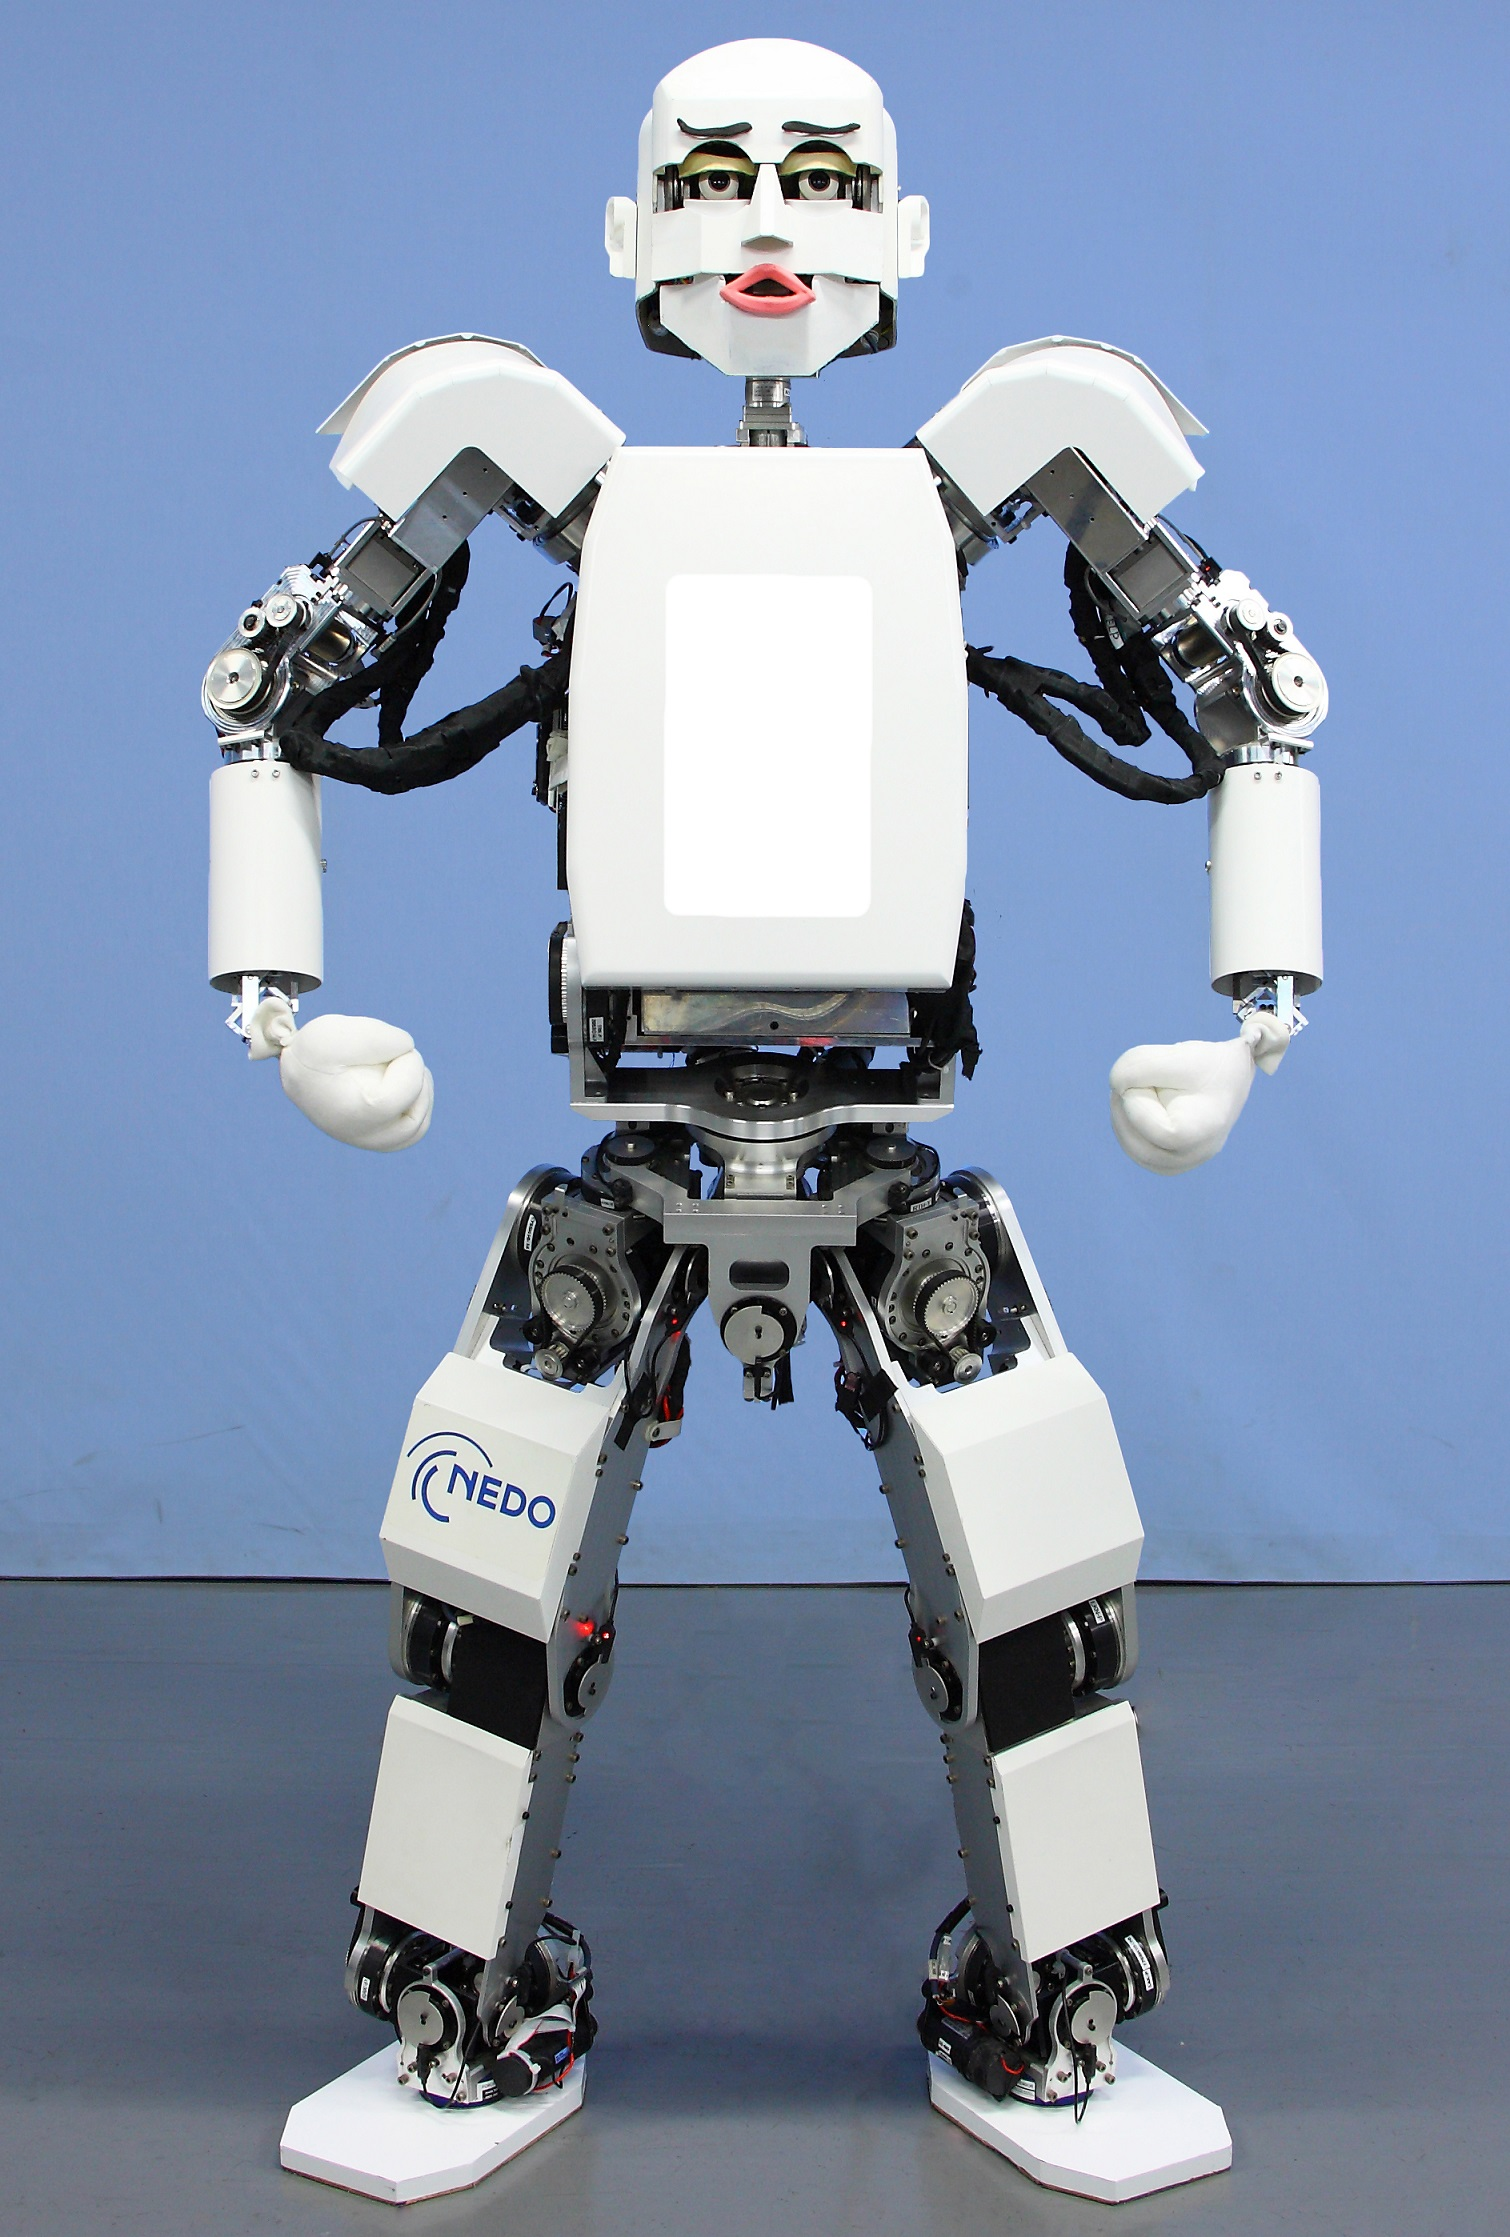 humanoid robotics research paper This sample robots research paper is published for educational and informational purposes only if you need help writing your assignment, please use our writing services .